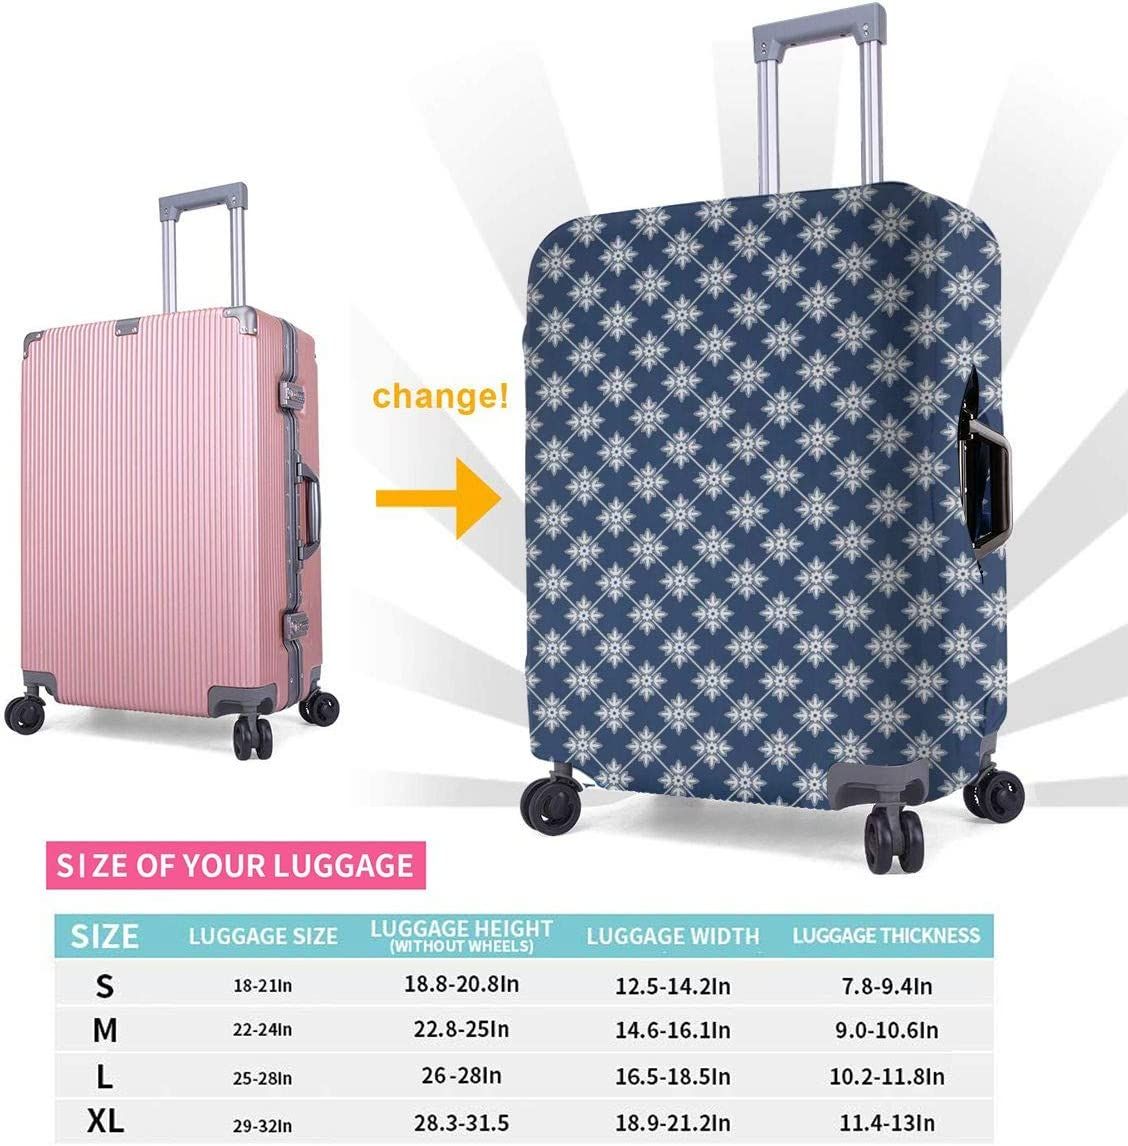 JHNDKJS Floral Flower Leaf Details Travel Luggage Cover Baggage Suitcase Protector Fit for 12-18 Inch Luggage